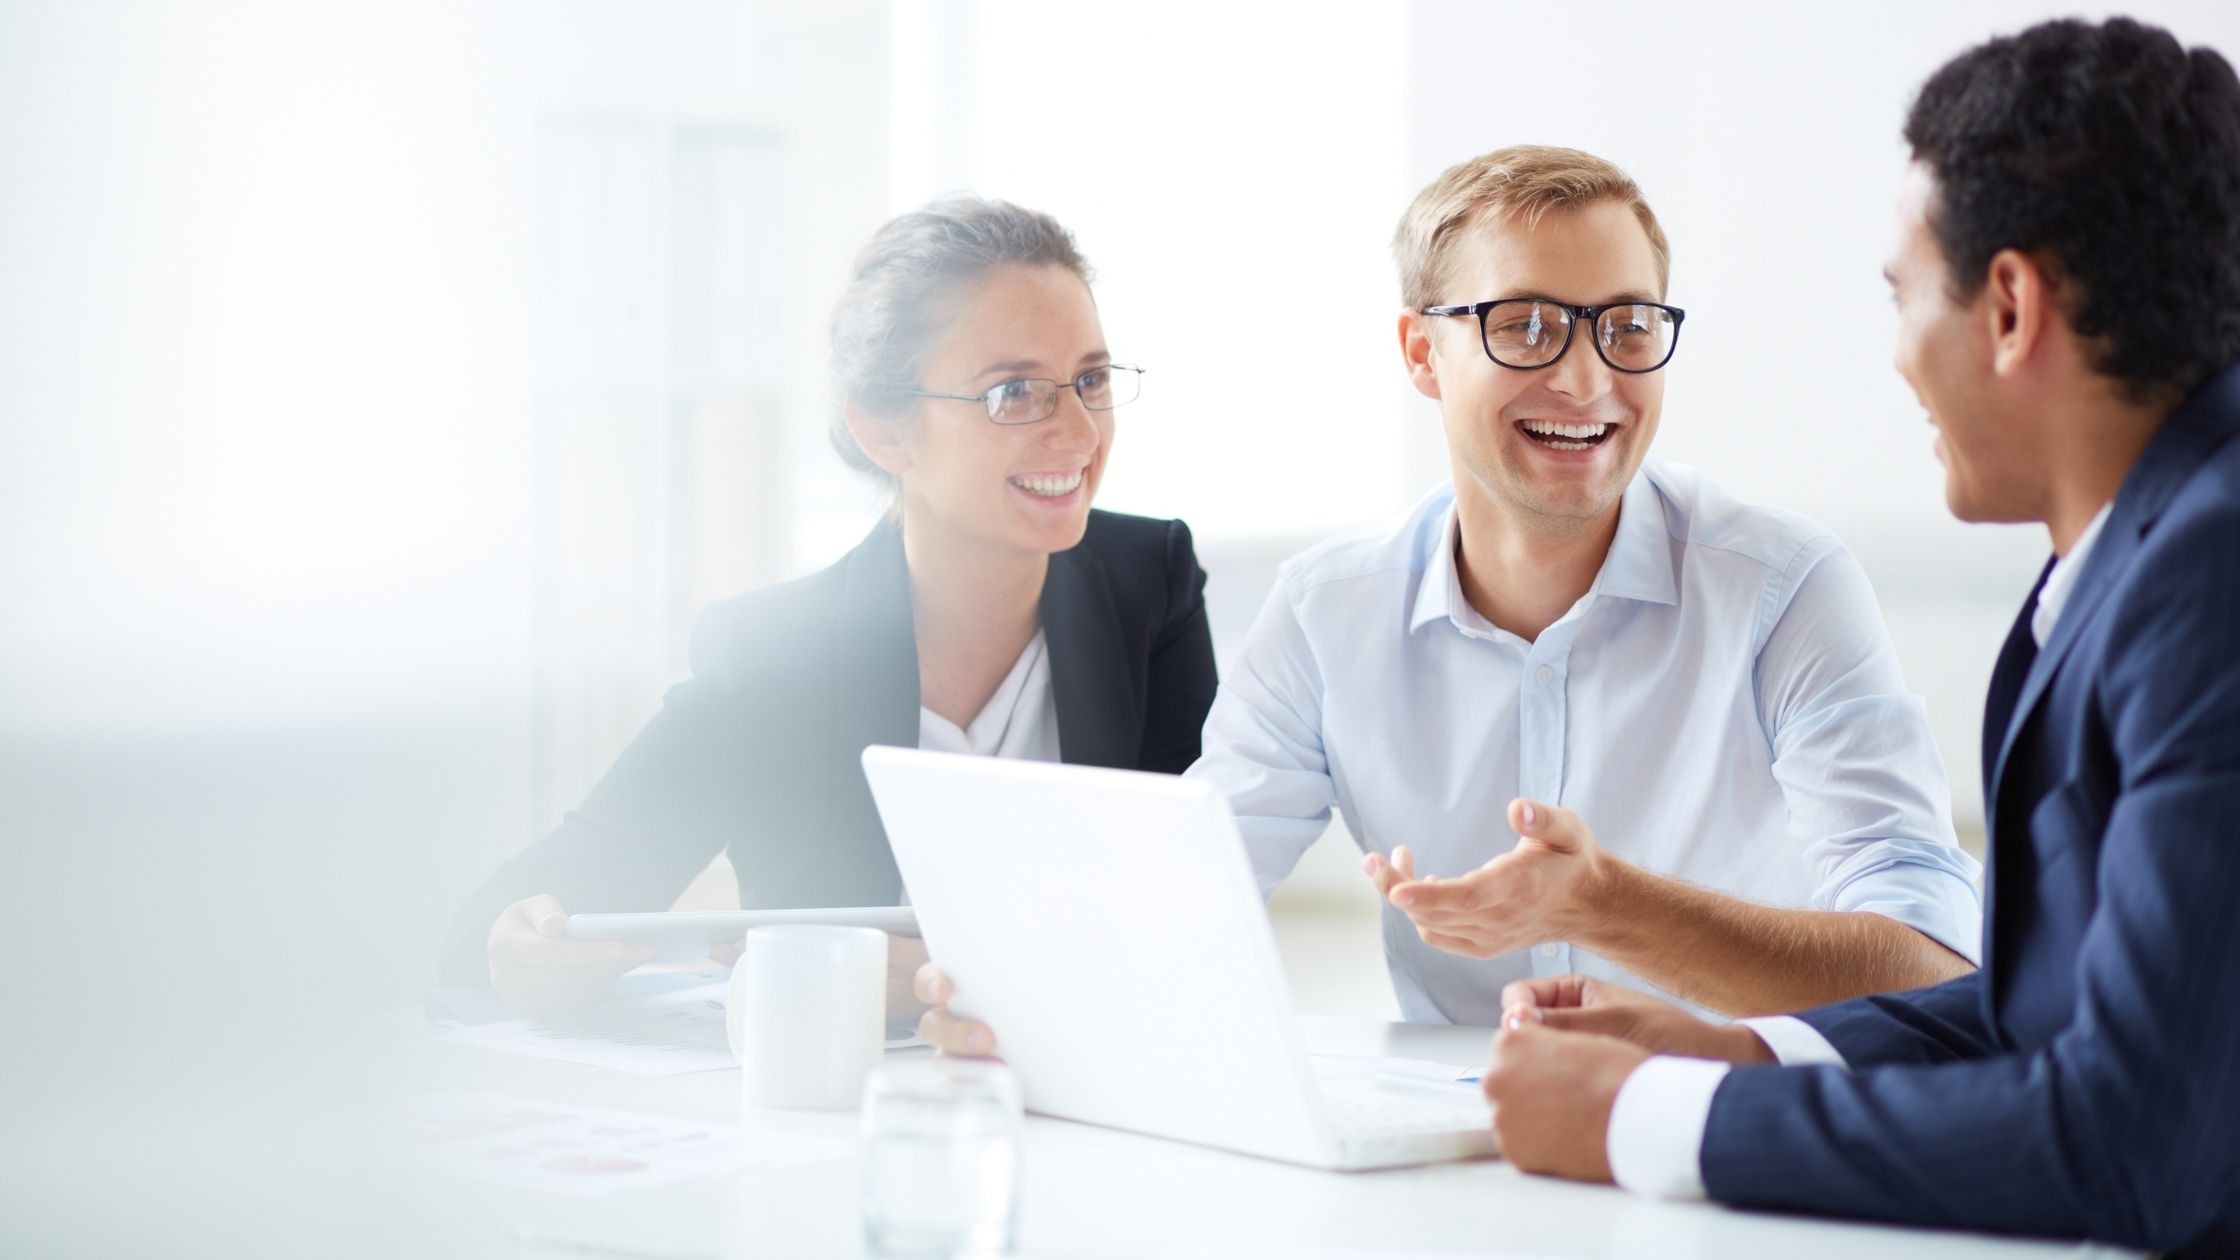 What To Look For In An Insurance Broker